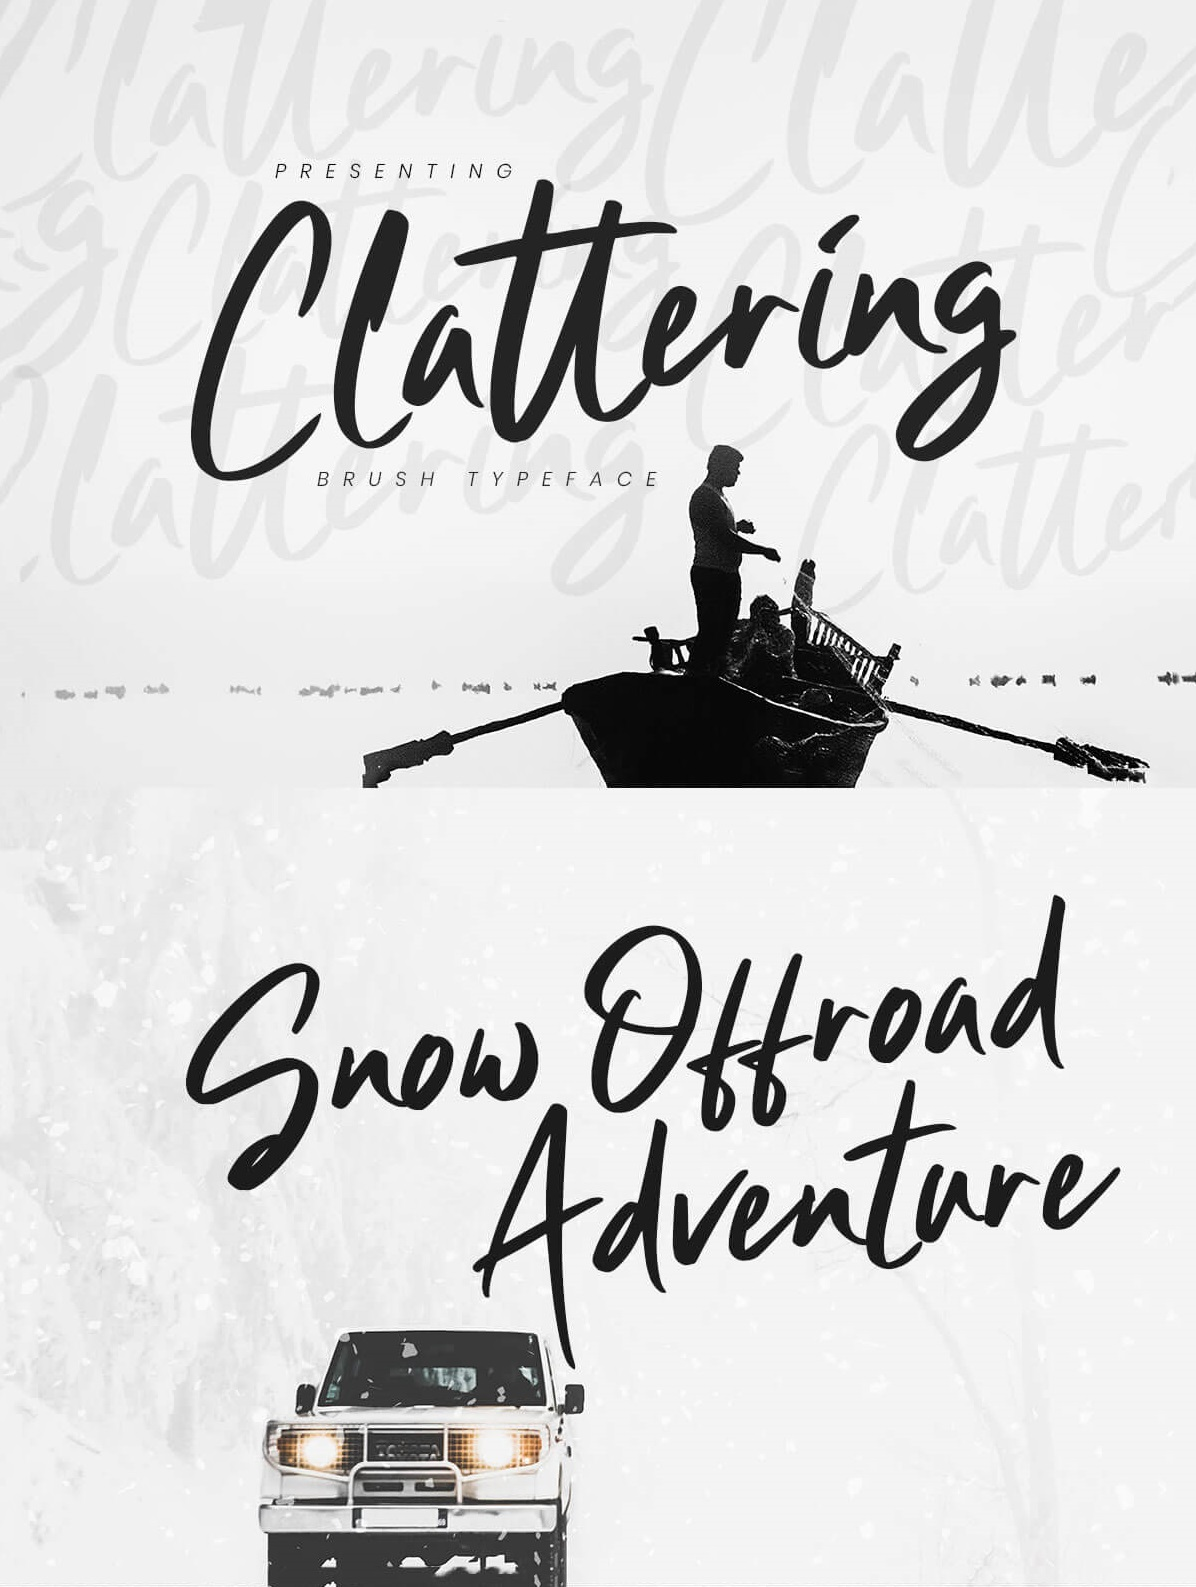 Free-Clattering-Brush-Font-1 croped